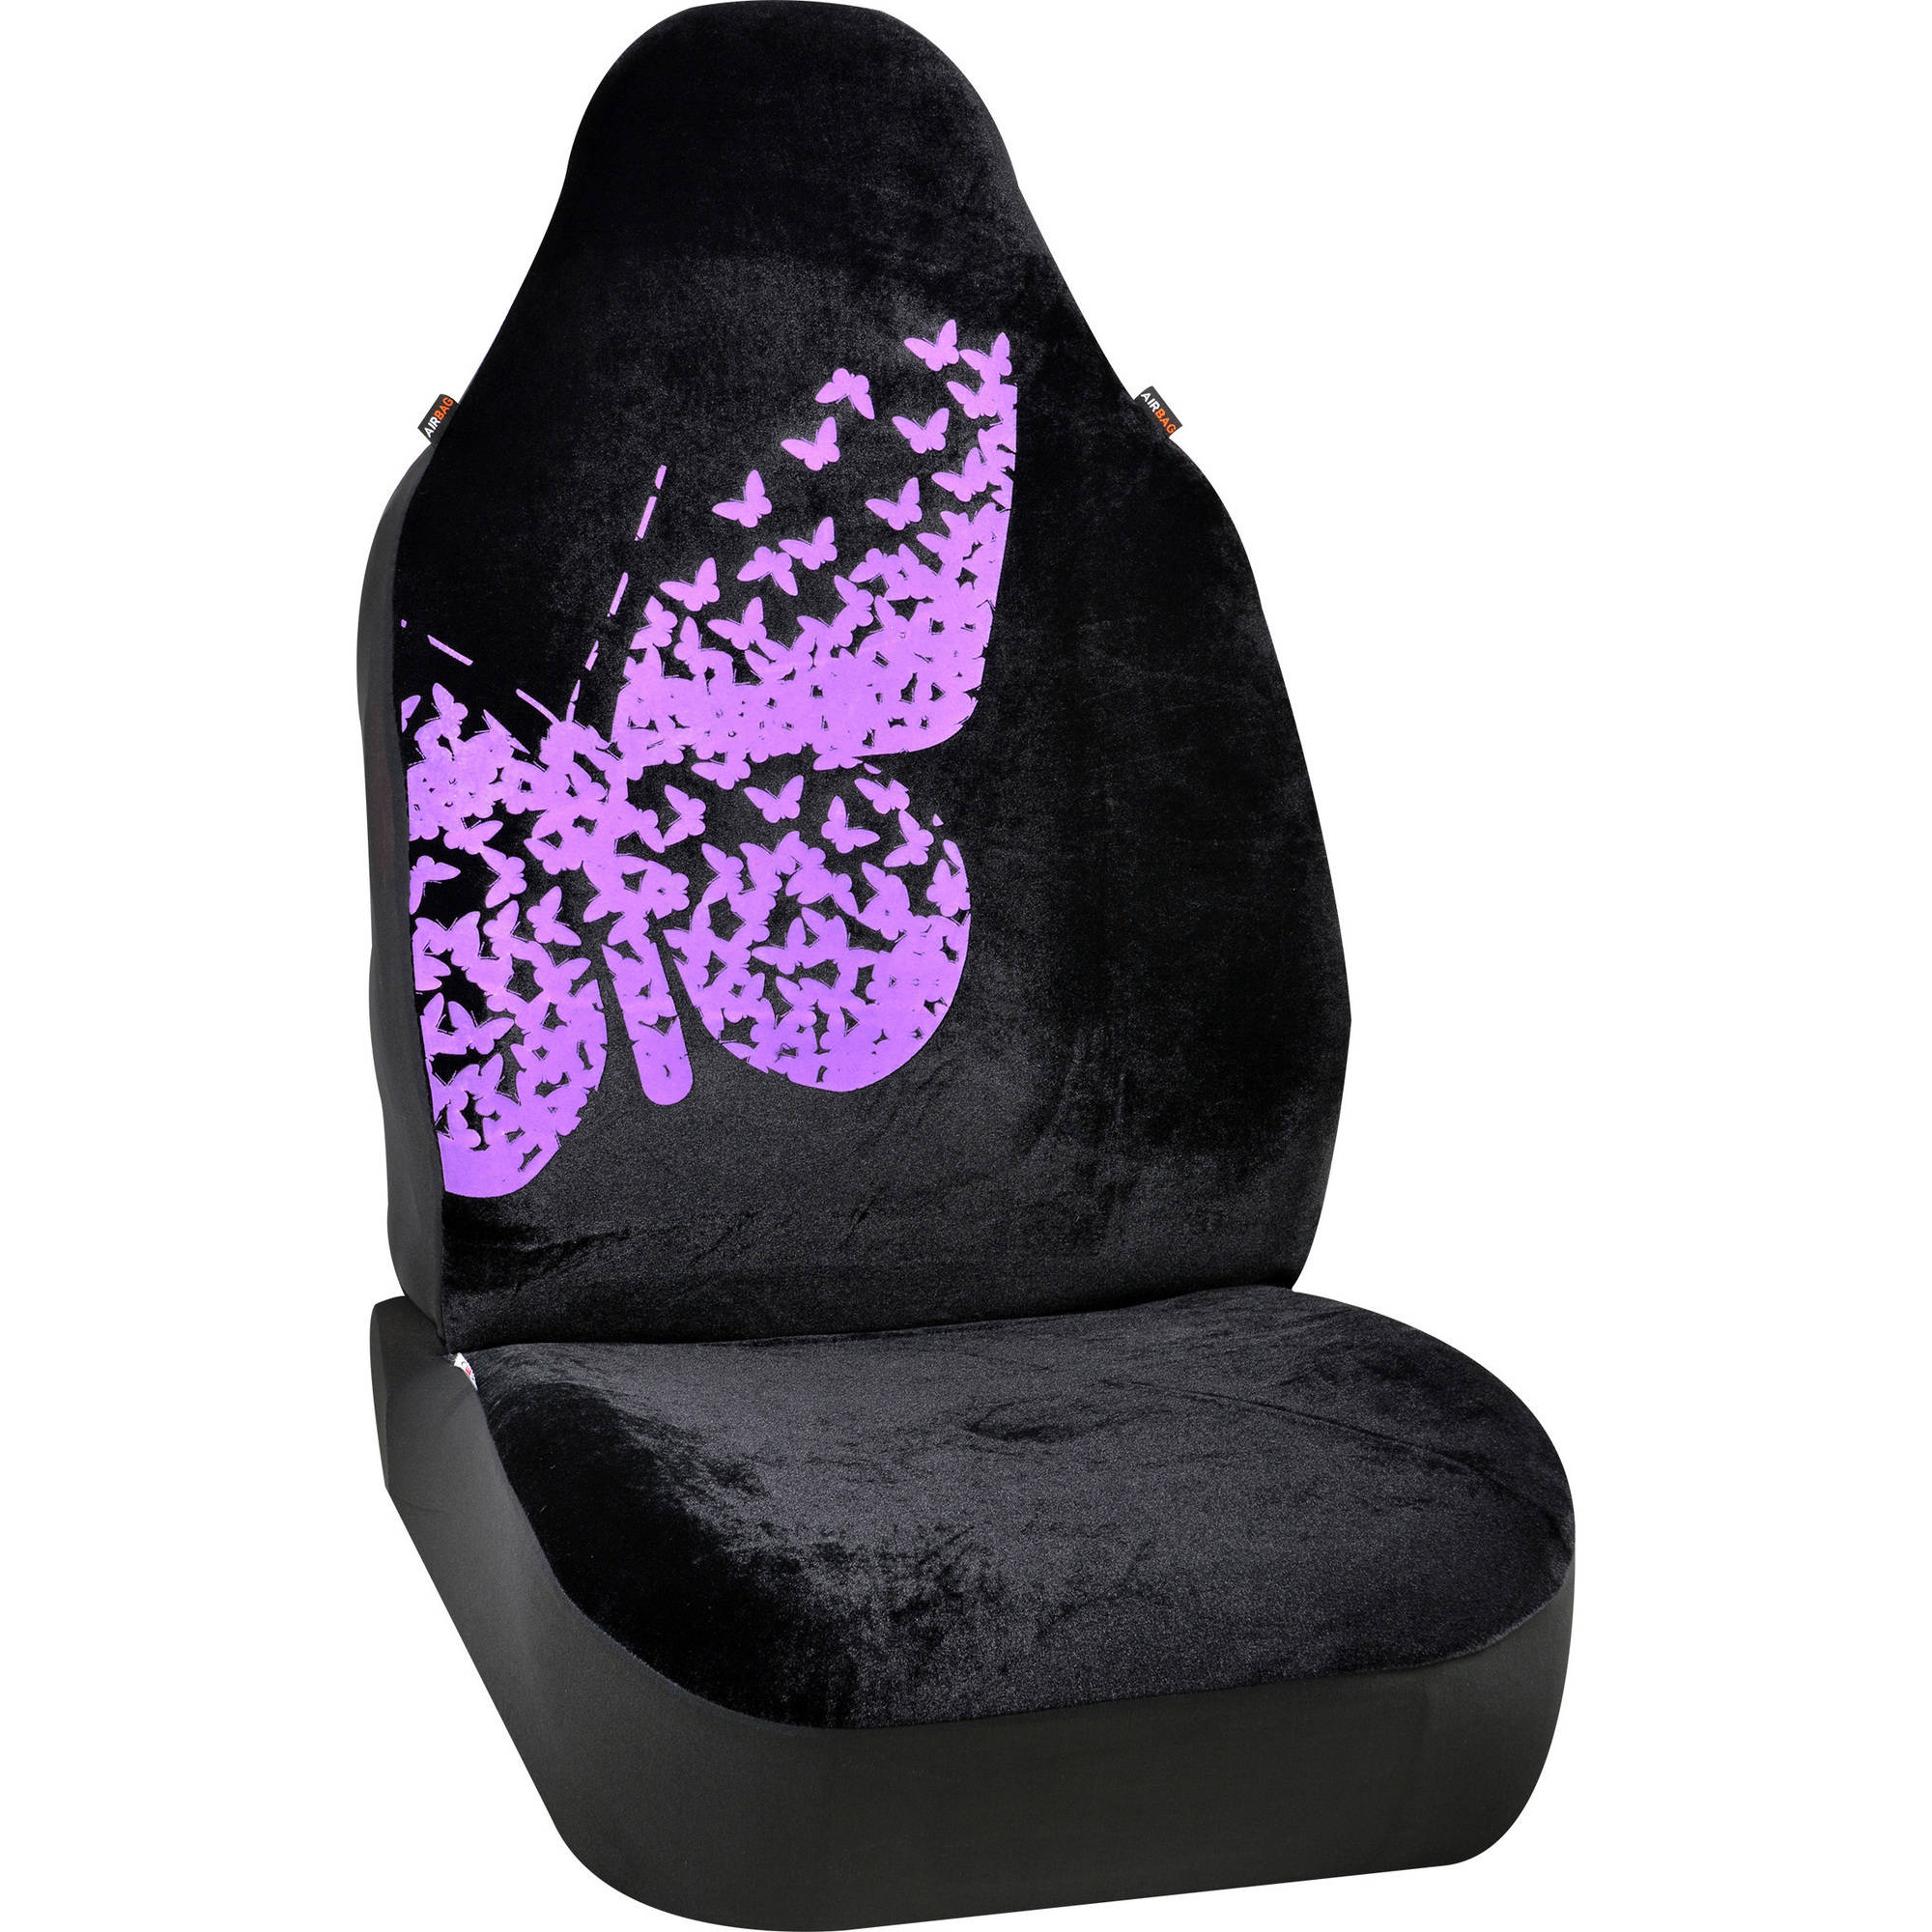 Seatcover Purple Butterfly By Autodrive